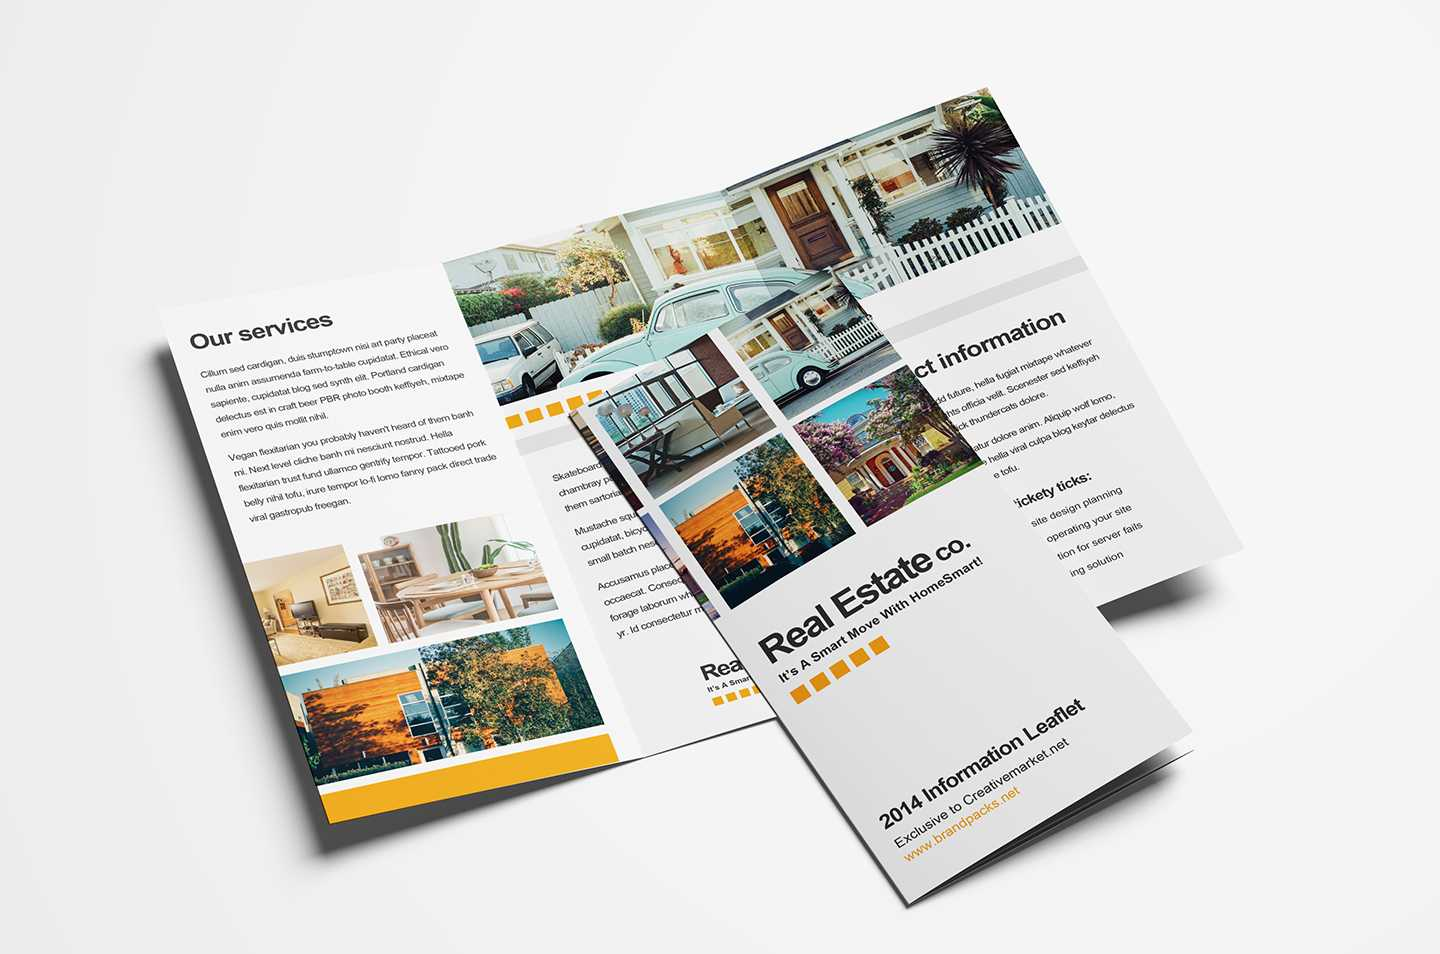 Free Real Estate Trifold Brochure Template In Psd, Ai Inside Real Estate Brochure Templates Psd Free Download